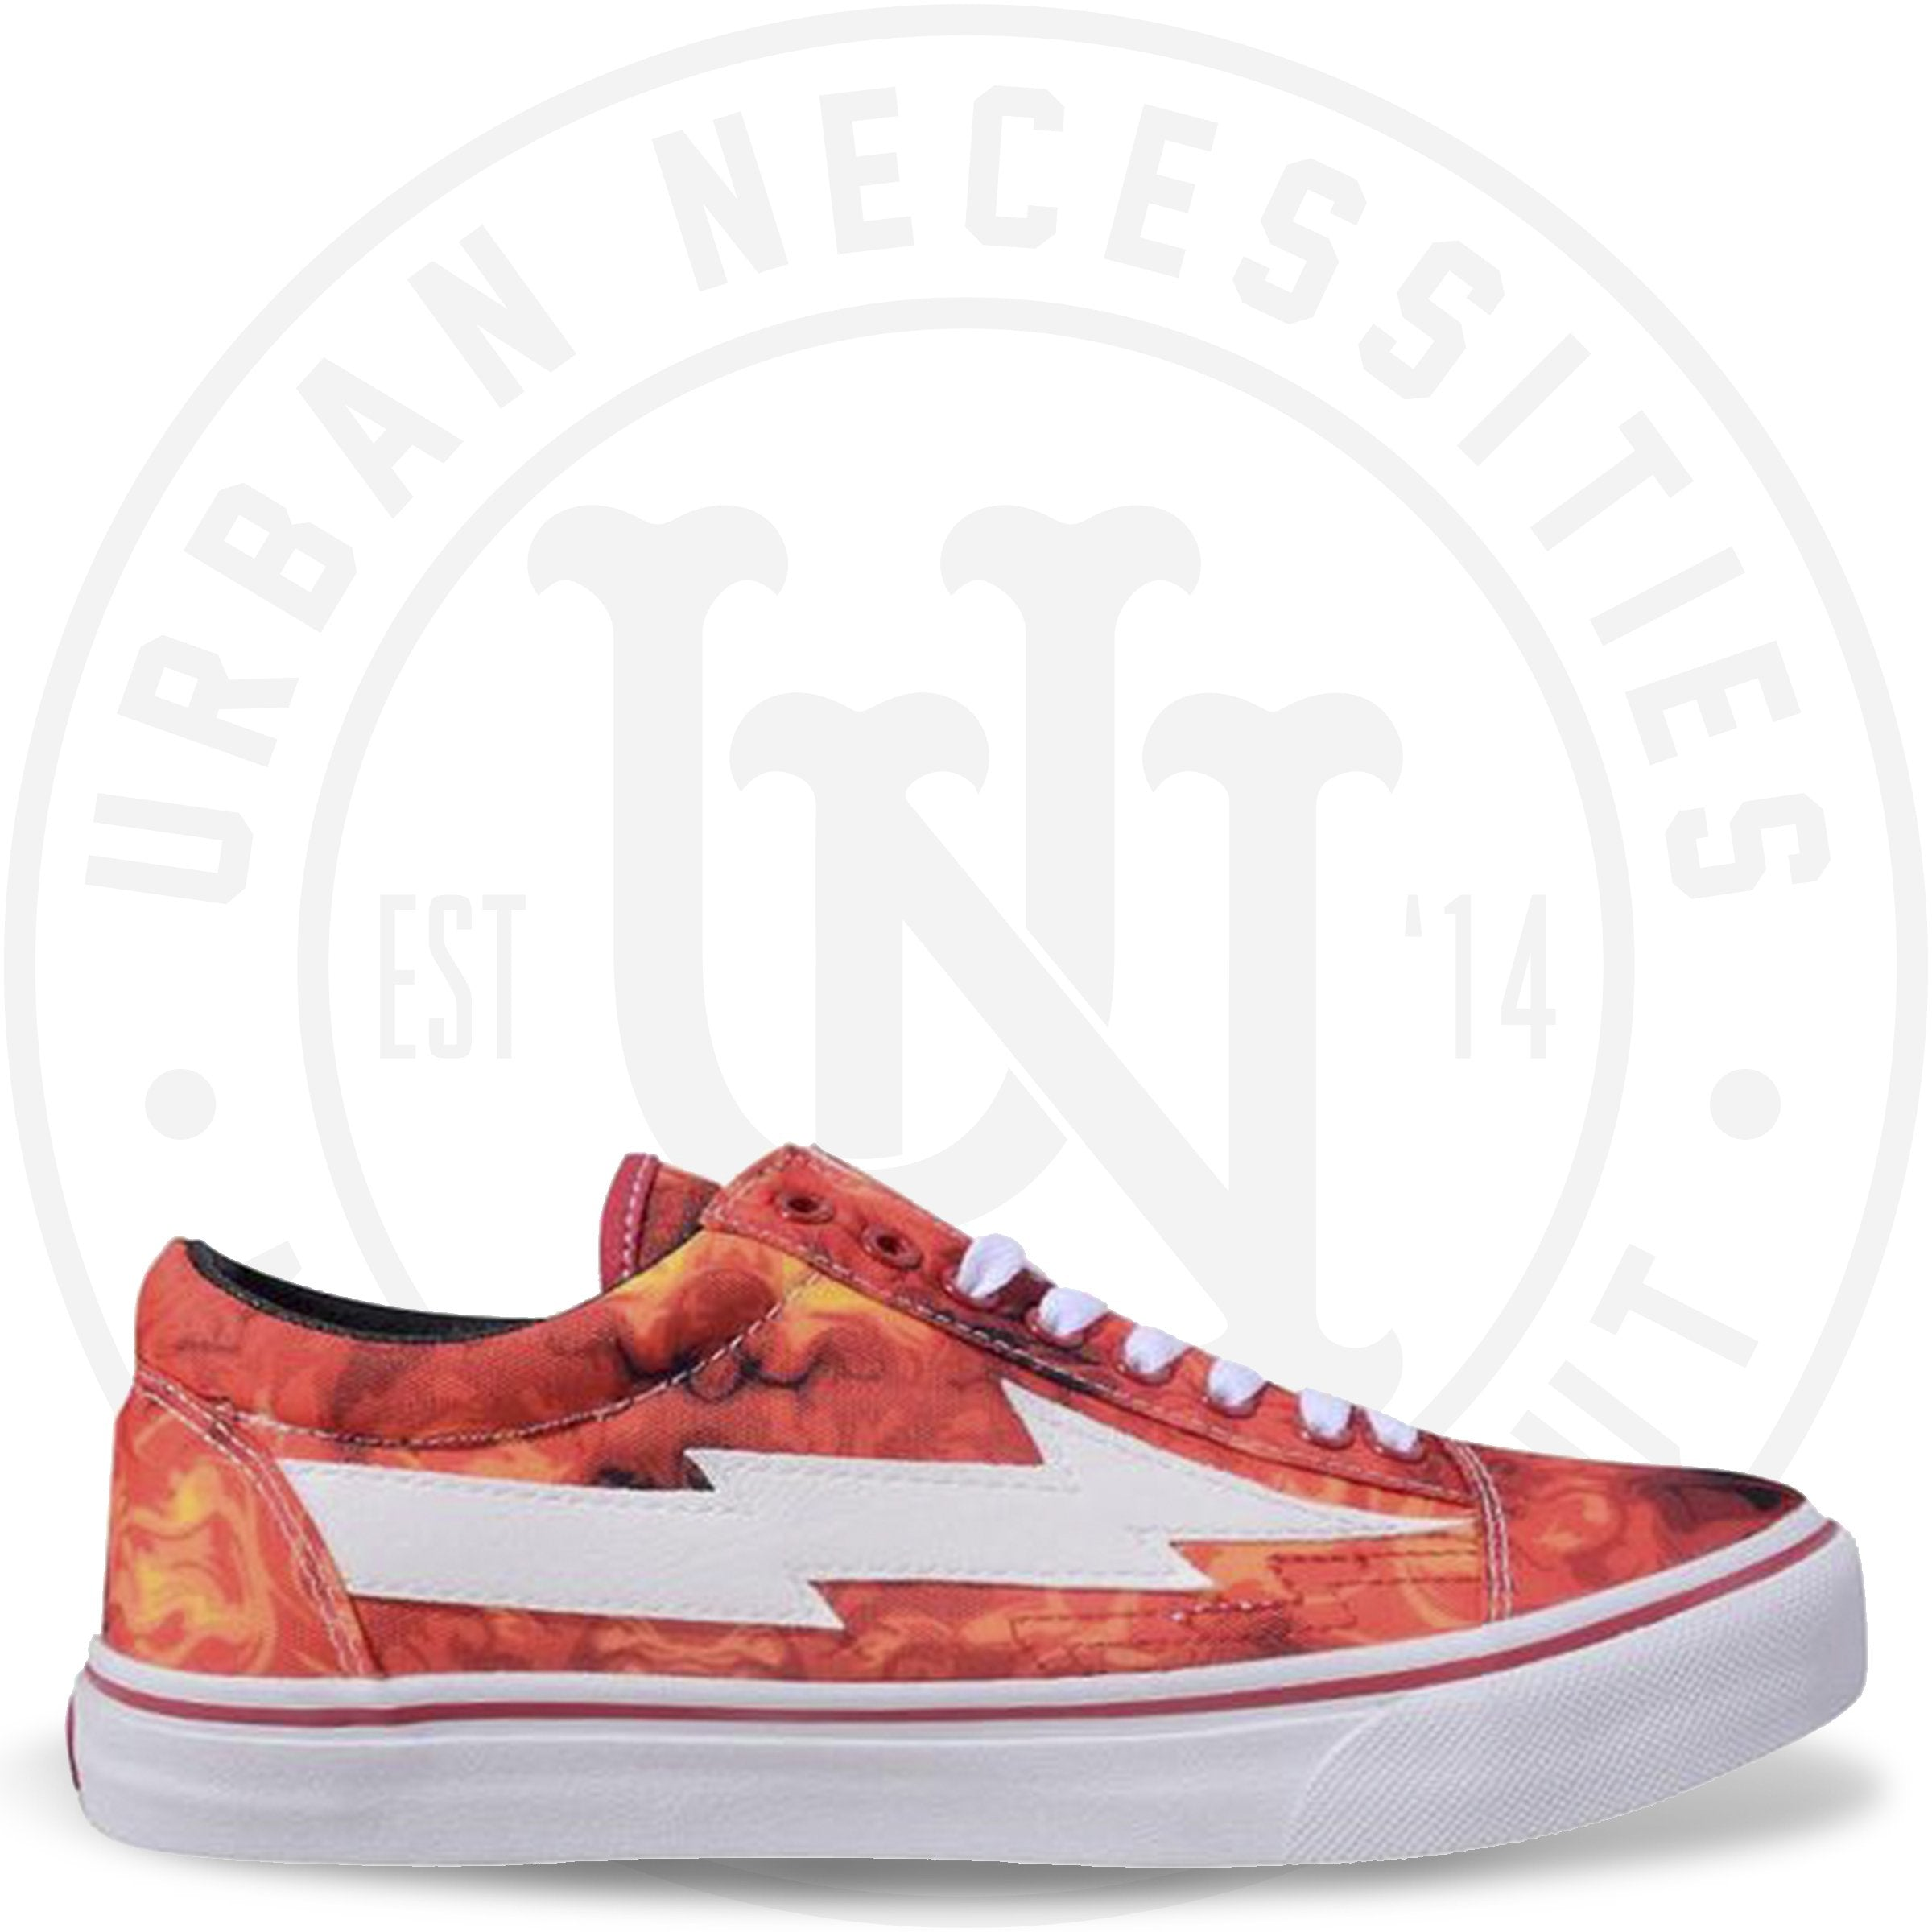 743df689daf149 Revenge x Storm II Vol. 3 All Red Flame   Urban Necessities